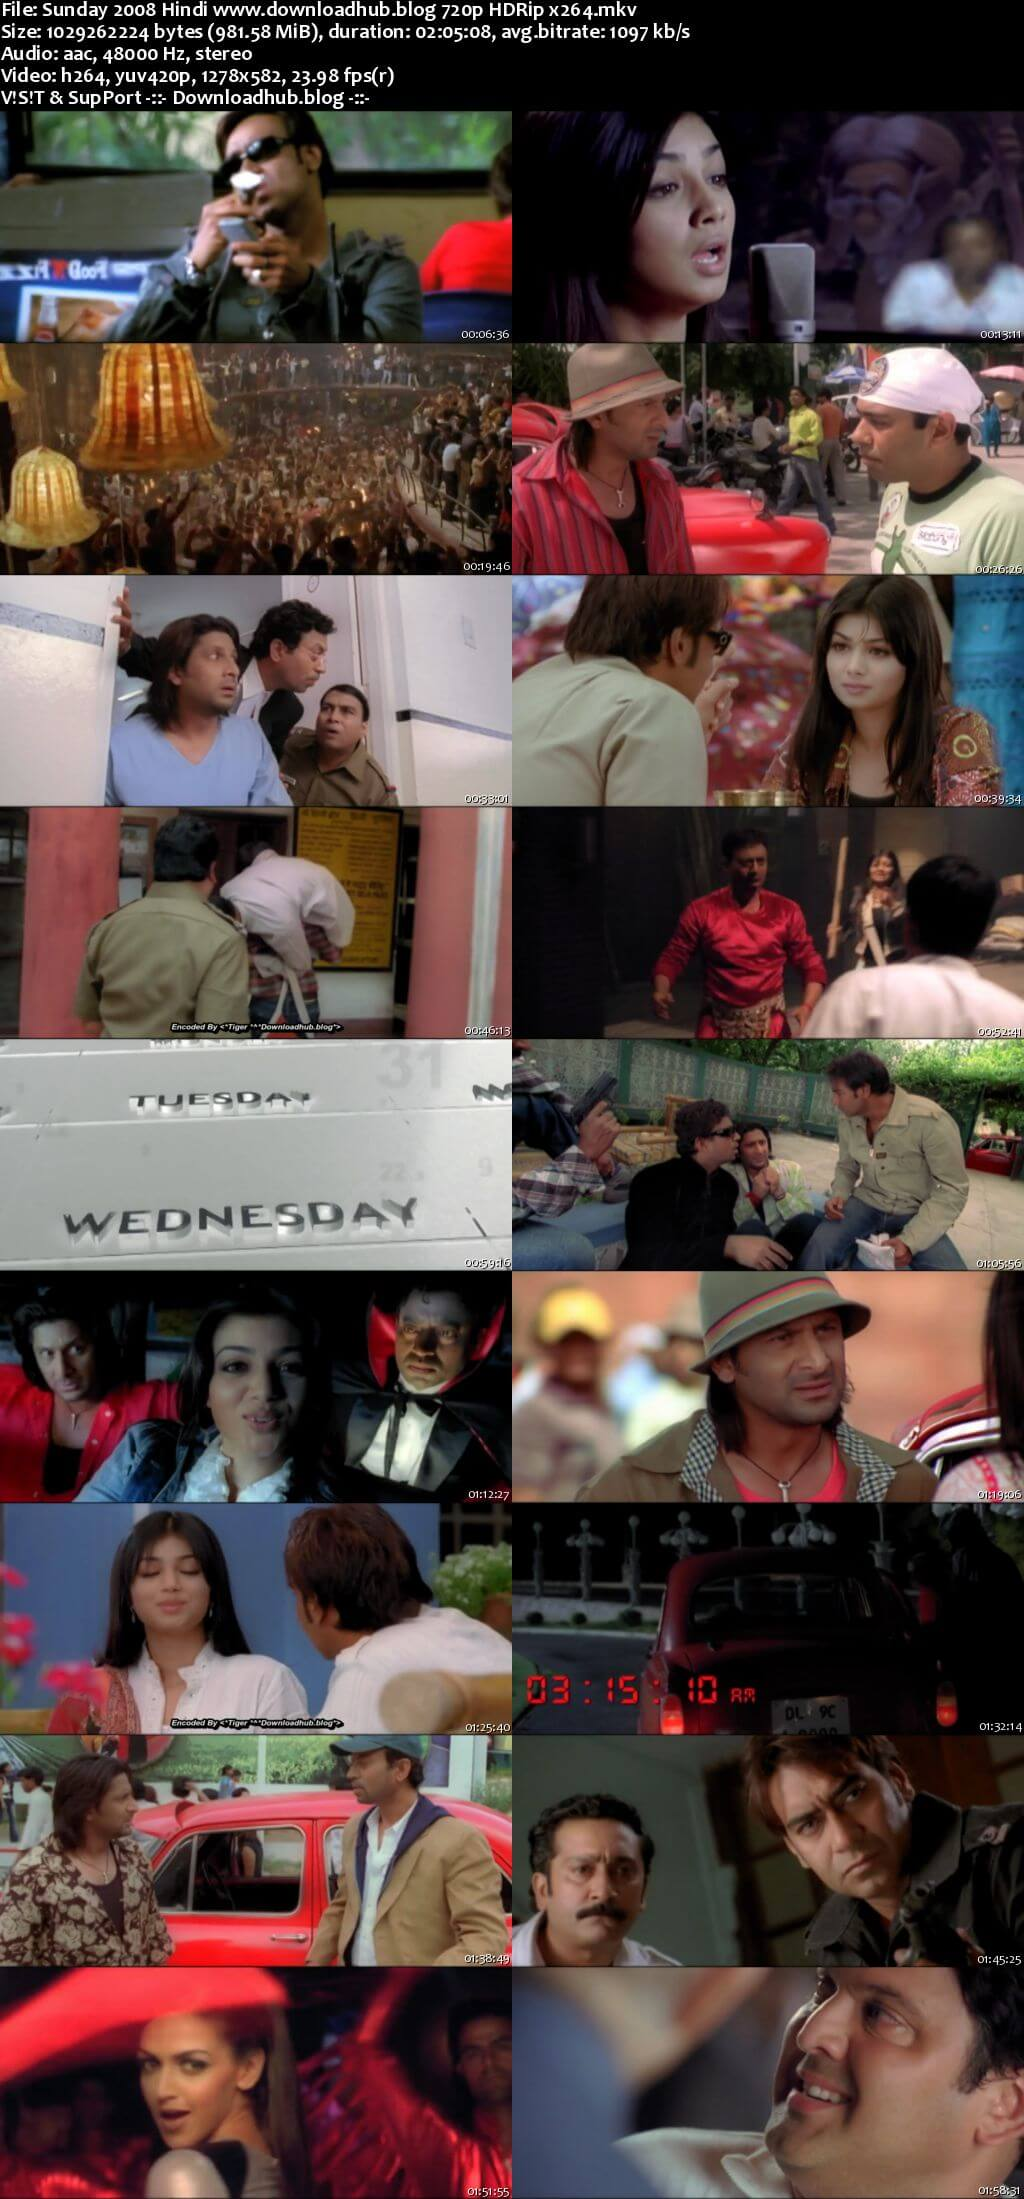 Sunday 2008 Hindi 720p HDRip x264